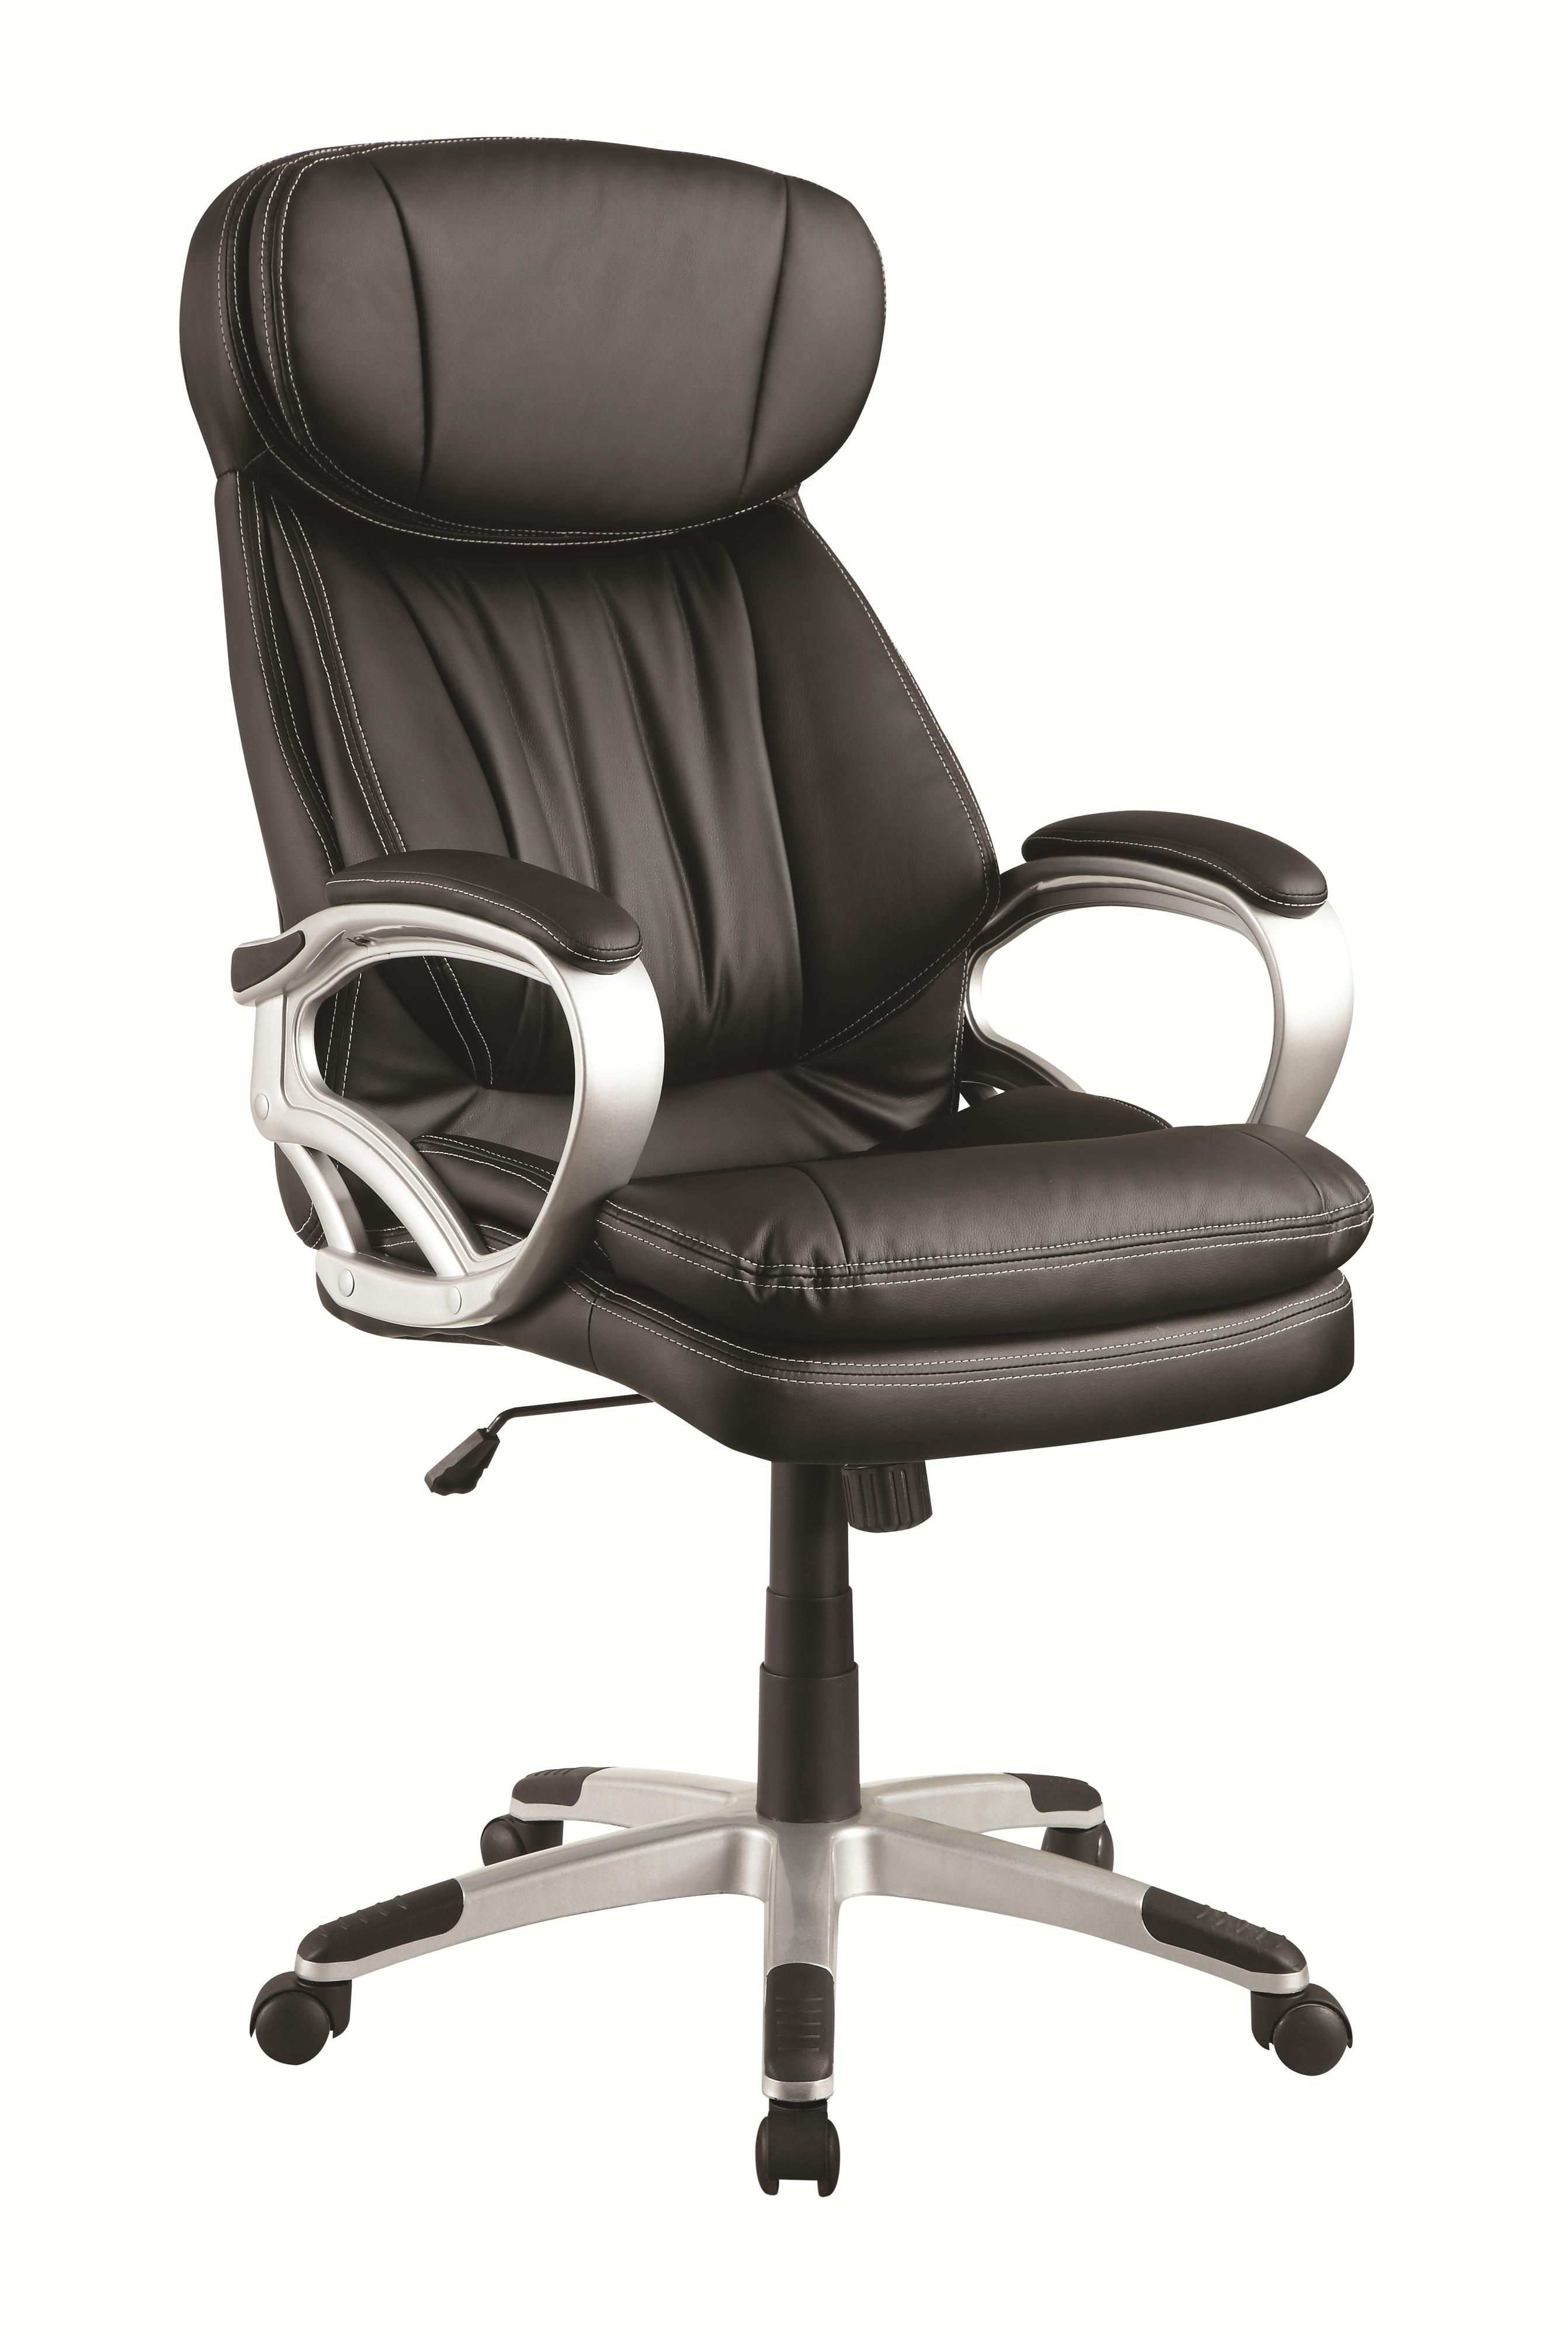 Coaster Office Chairs Office Chair - Item Number: 800165